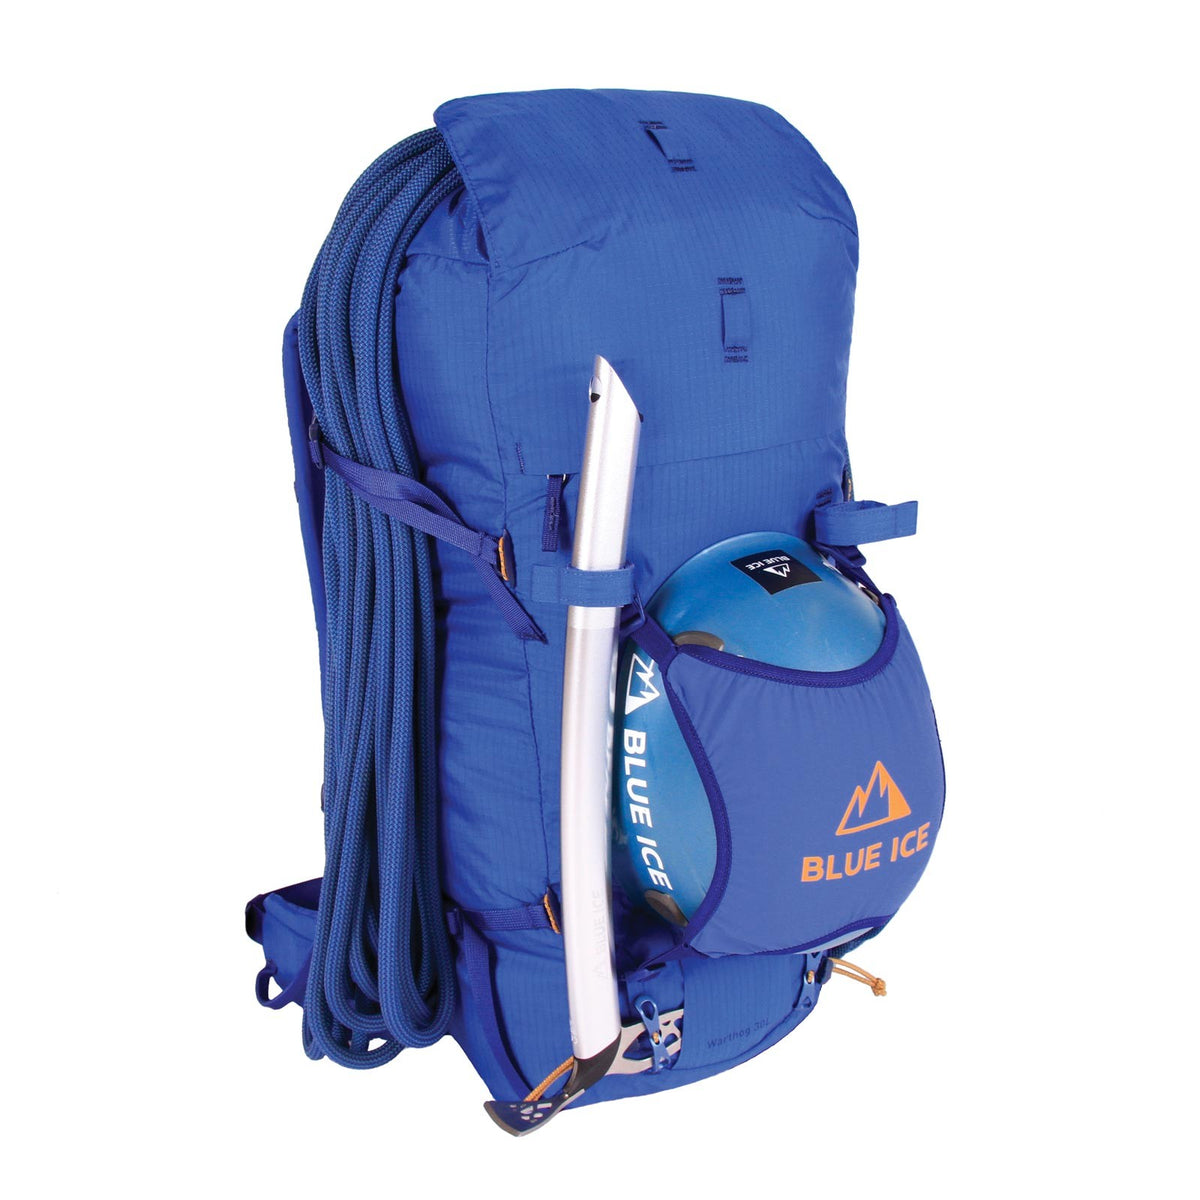 Blue Ice Warthog 30L rucksack, shown with climbing rope and helmet